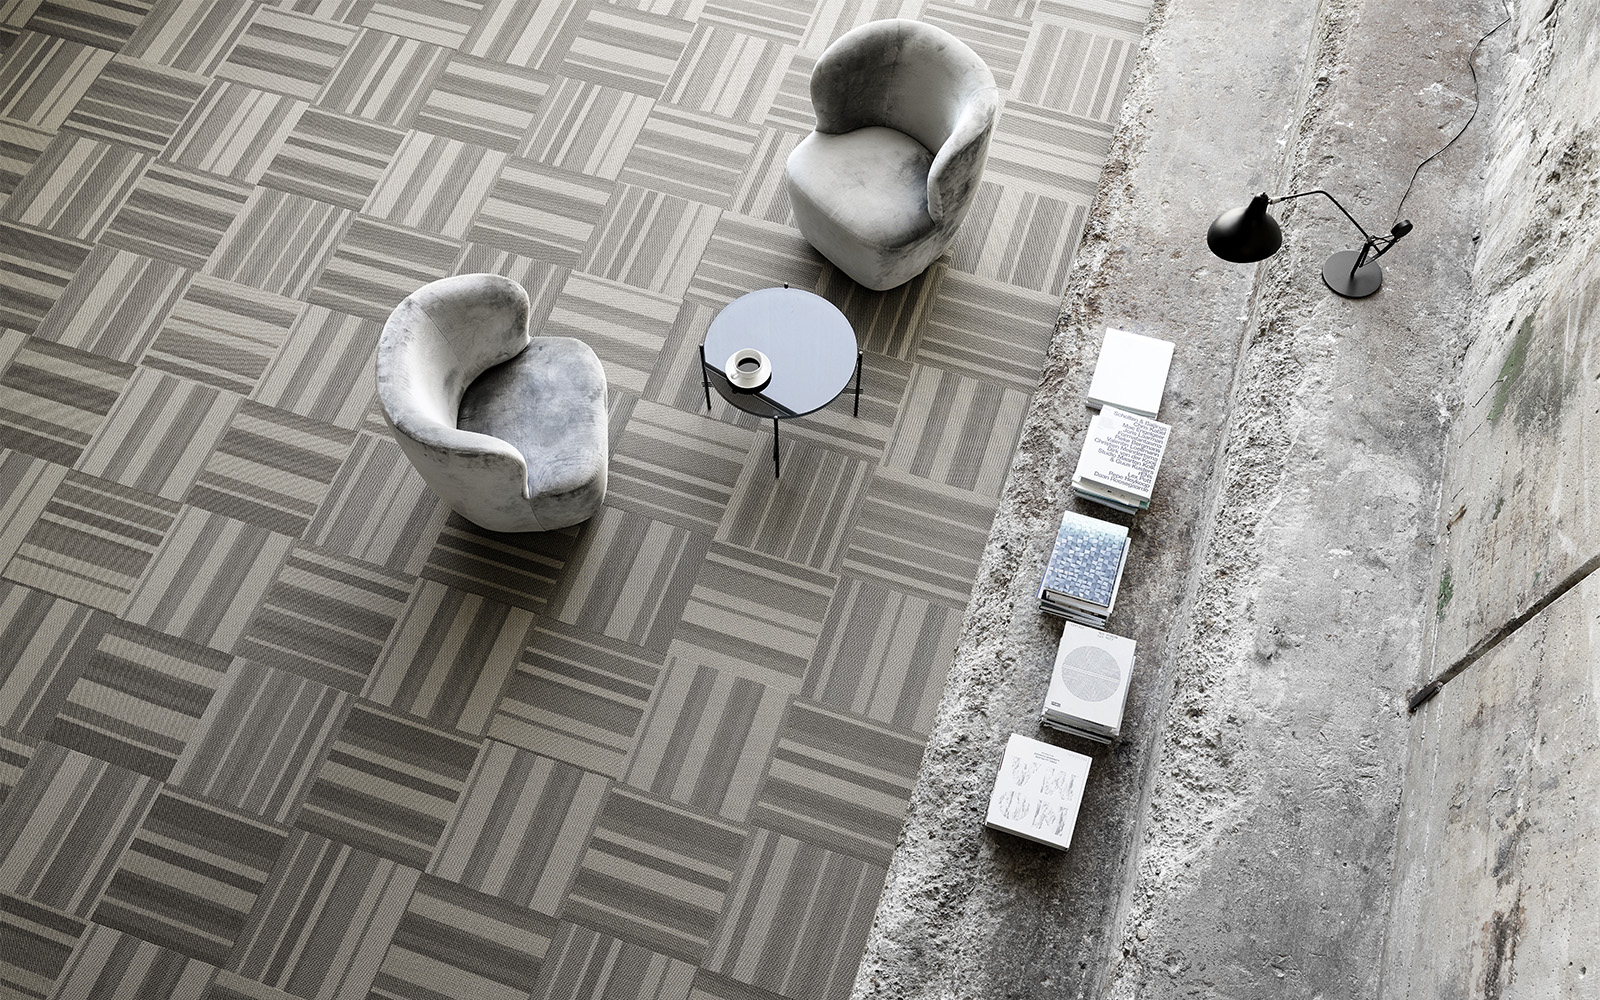 Two chairs in a plain setting room with grey striped carpet tiles